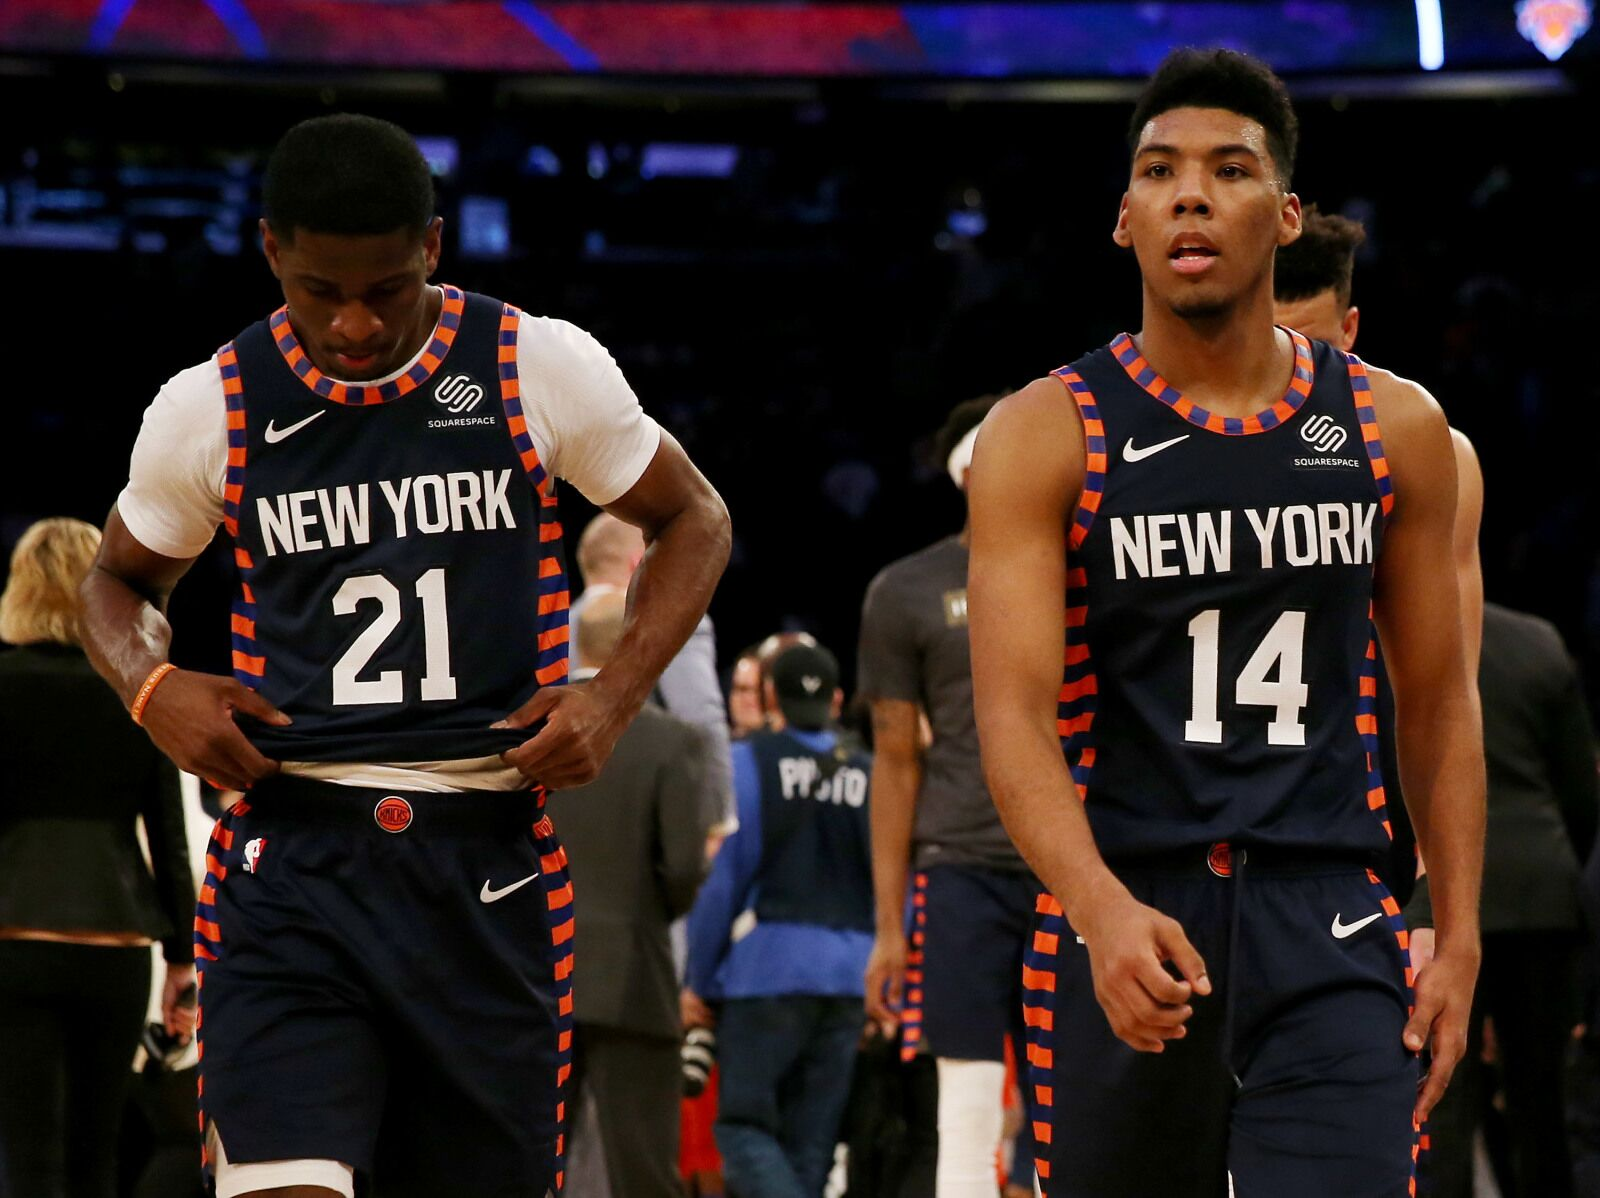 DFS NBA – The Top Salary Value Plays – Go With The Young Gun